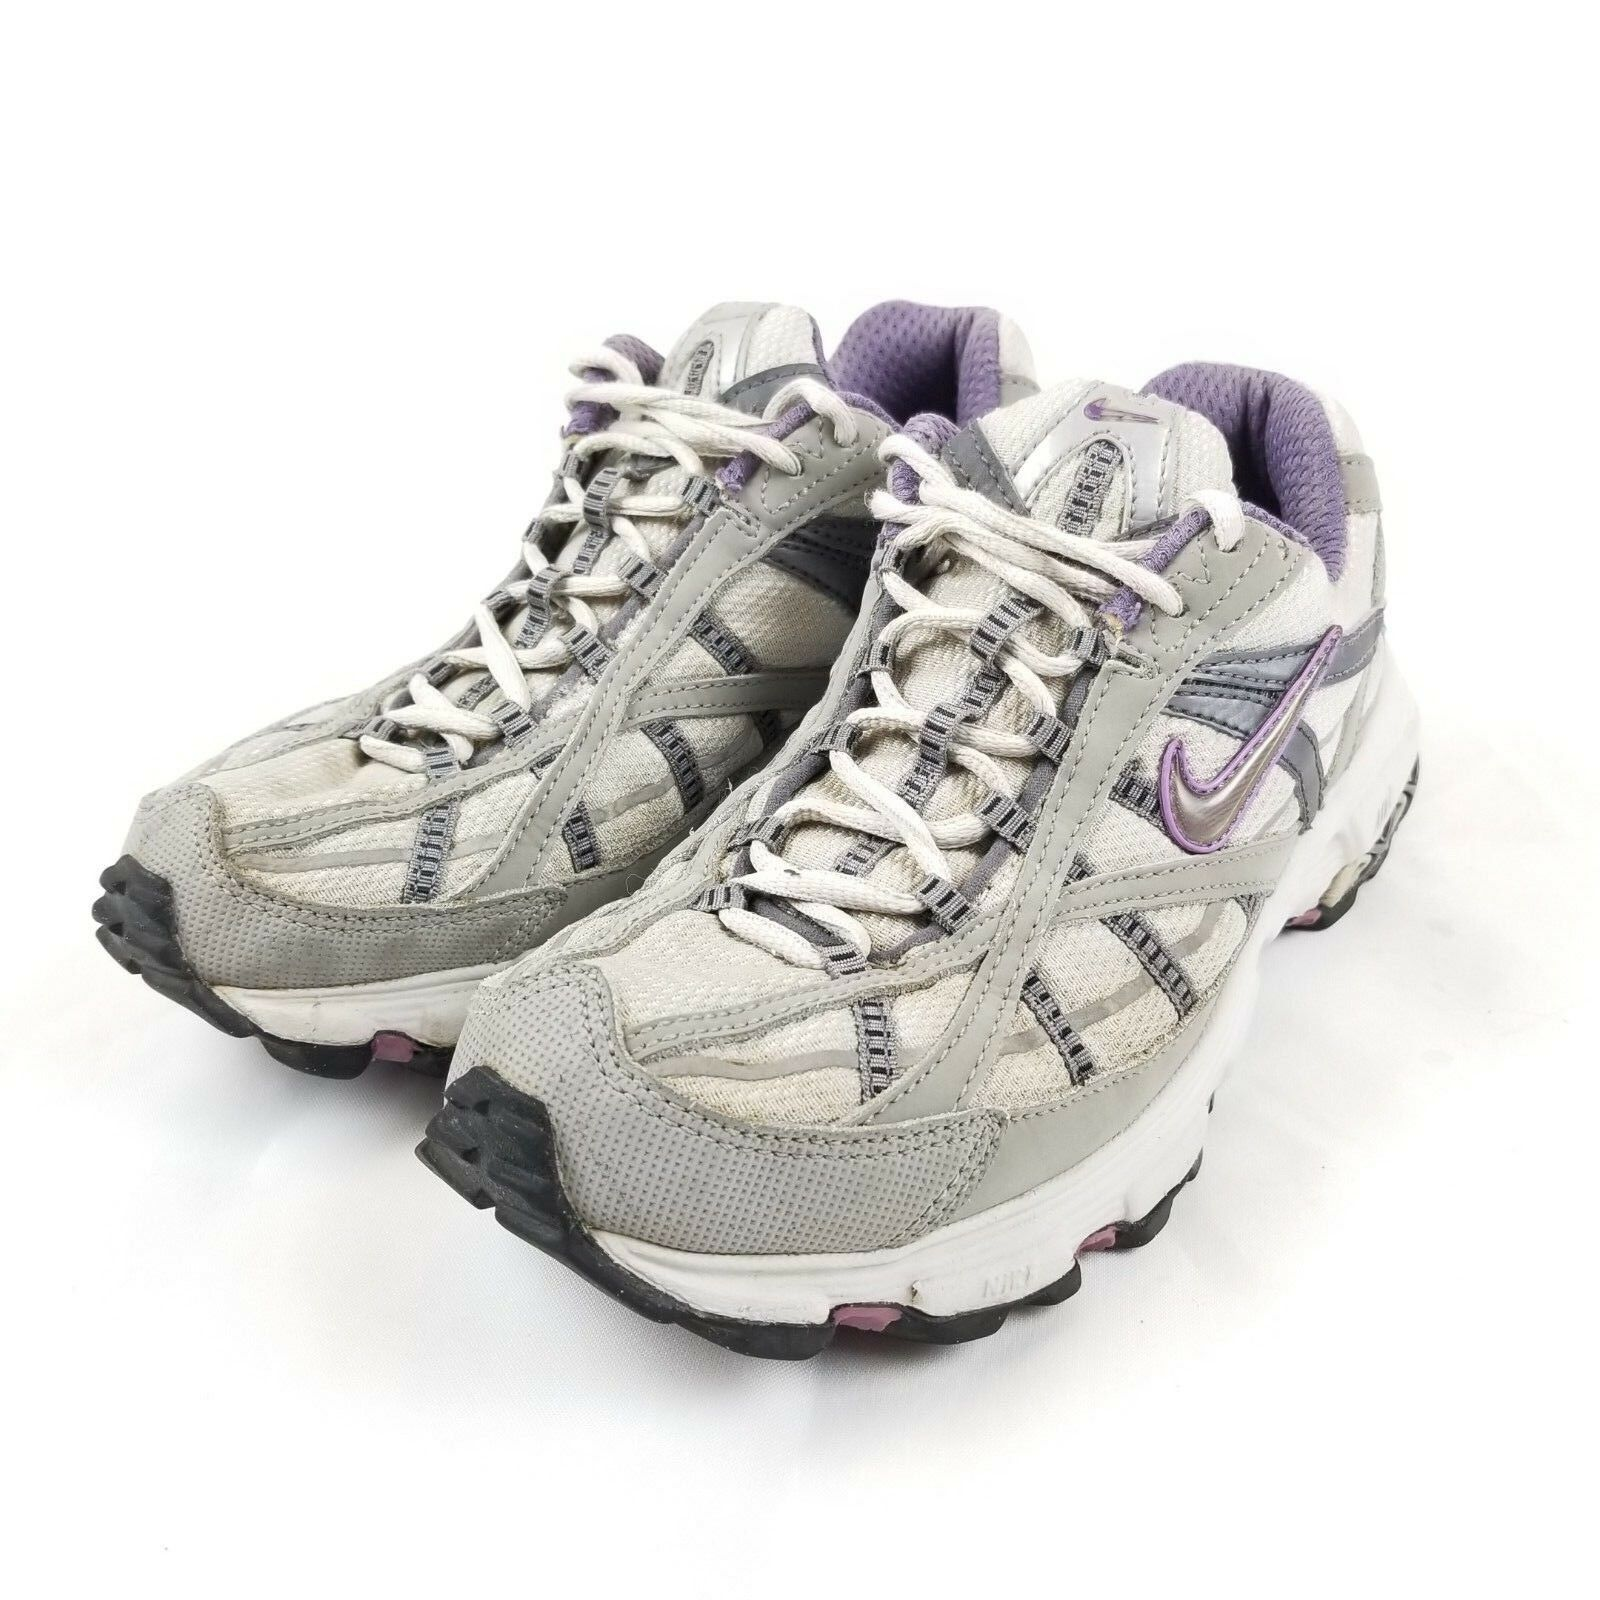 Women's Nike Air ACG BRS 1000 Athletic, Trail Running Shoes 311243-051, SZ 8